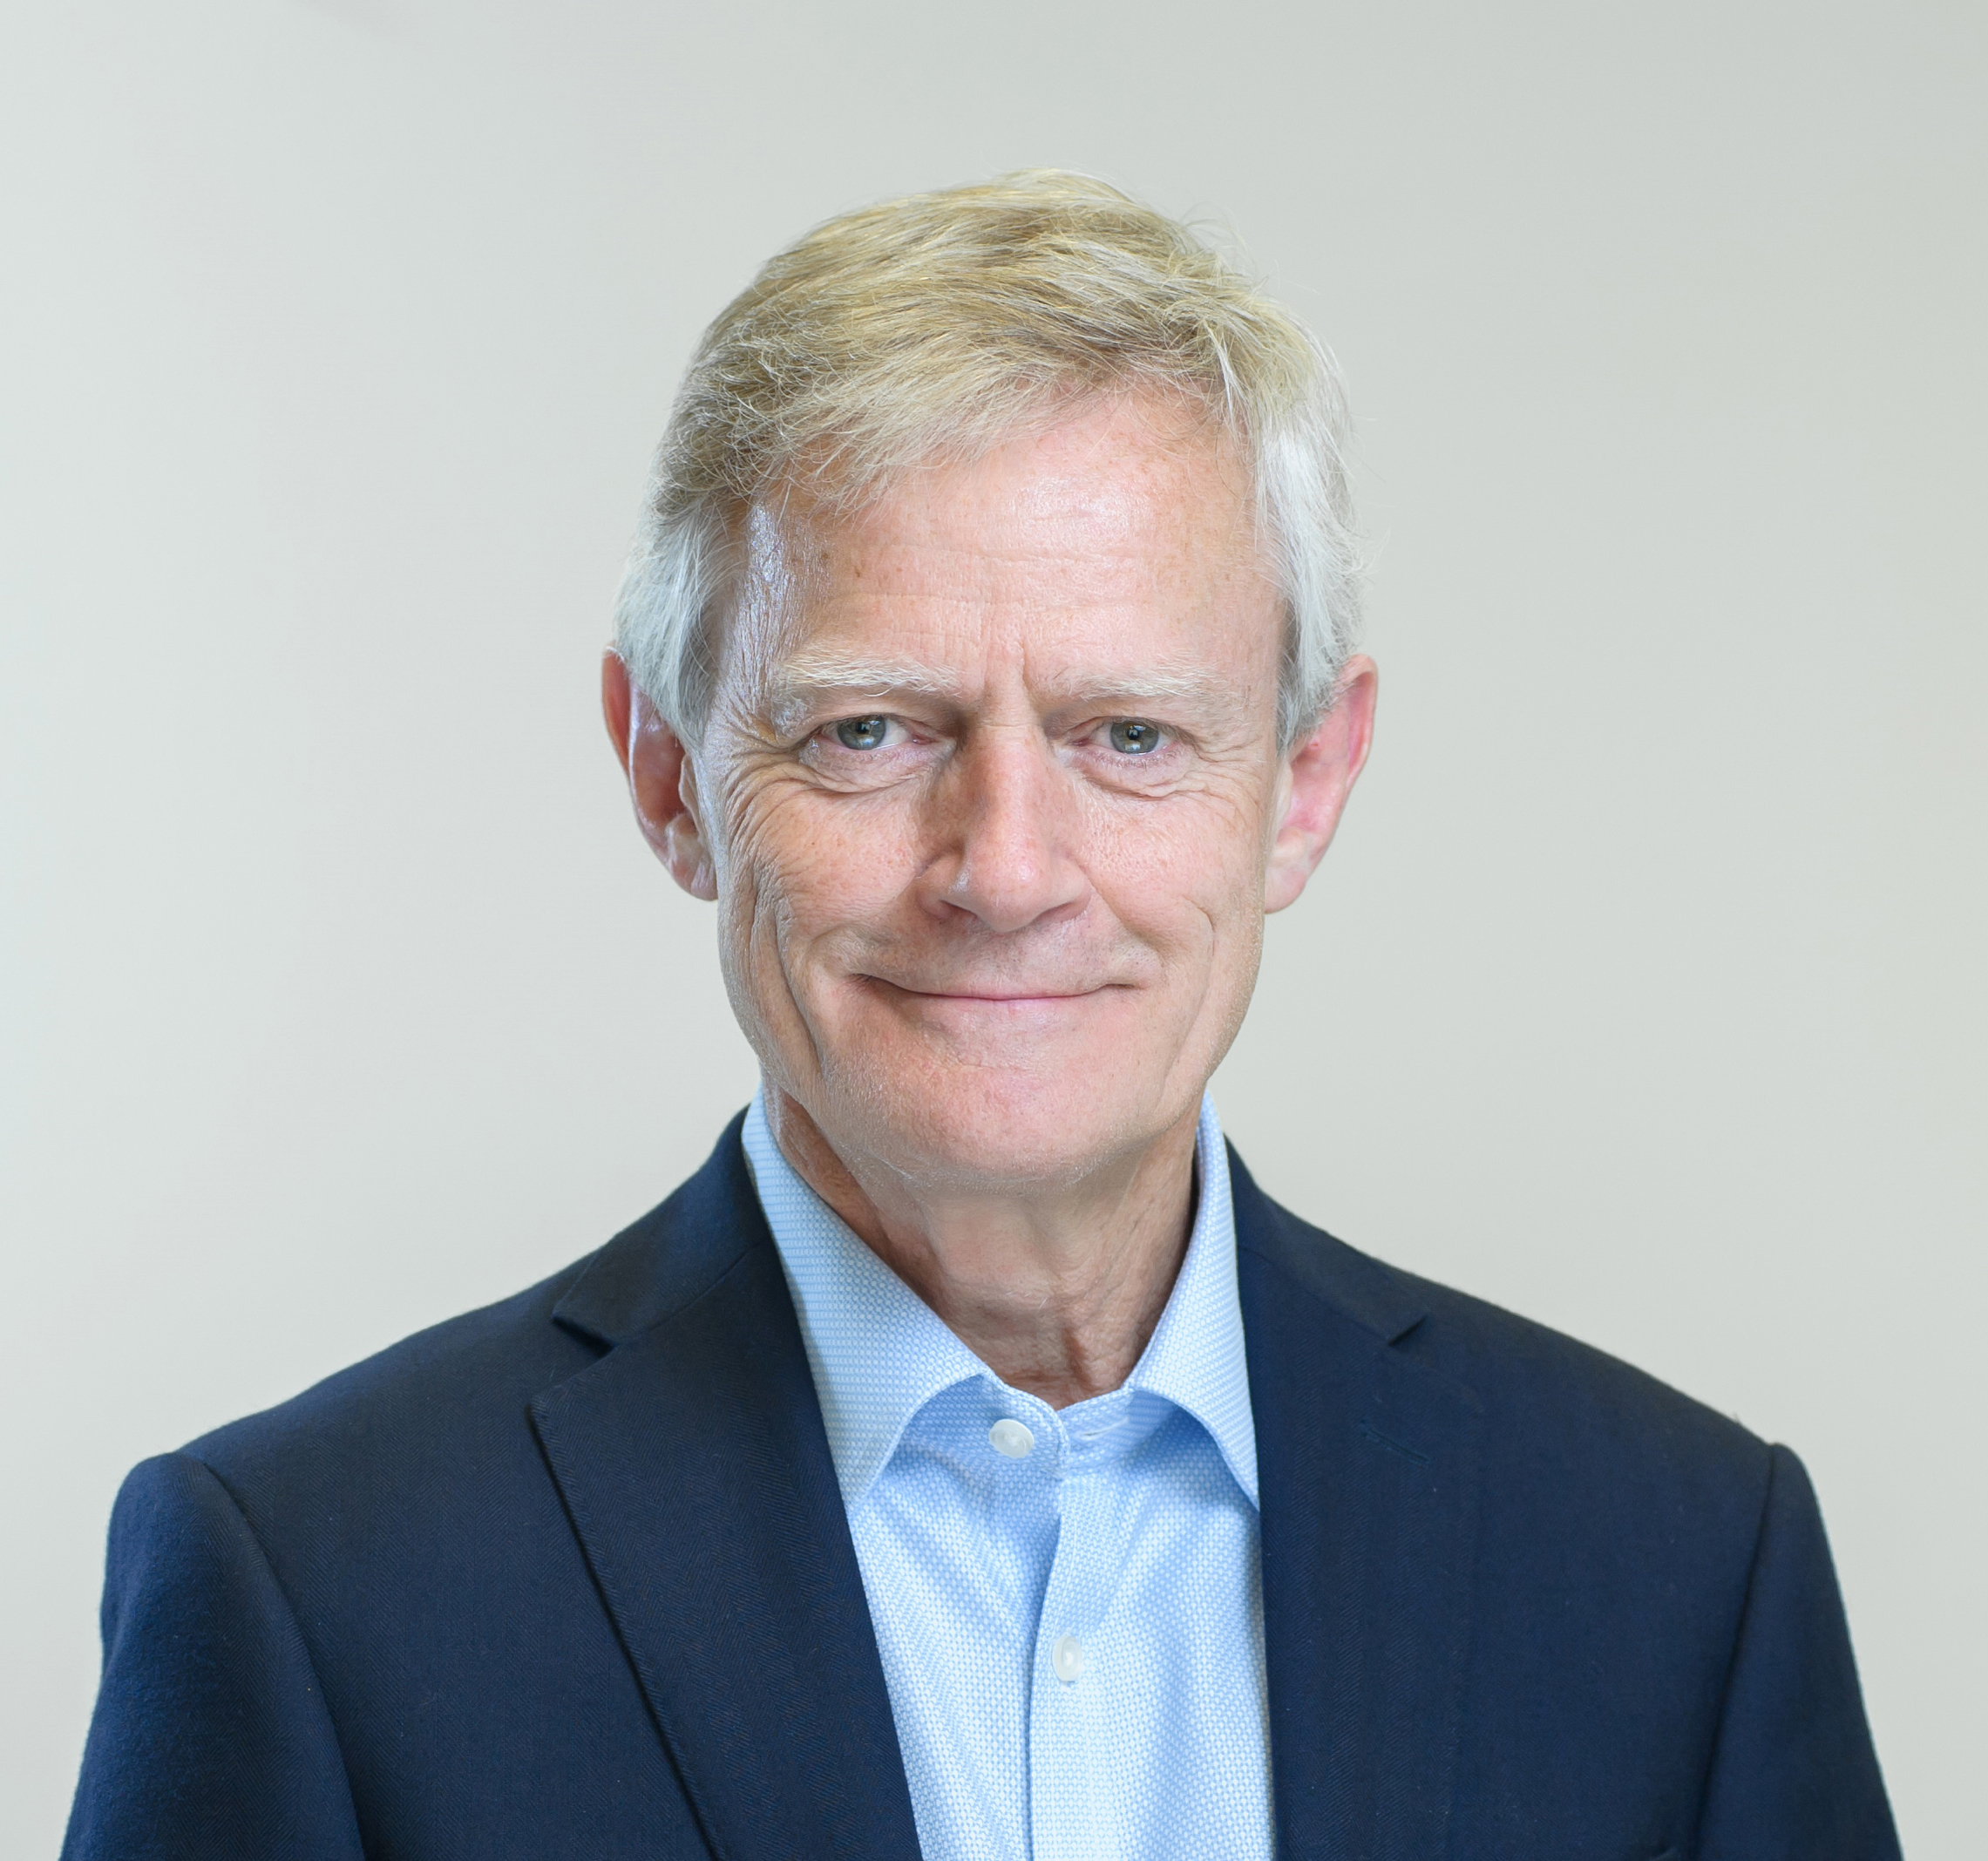 Head and shoulders photo of Mike Sharrock, Chairman of the BPA